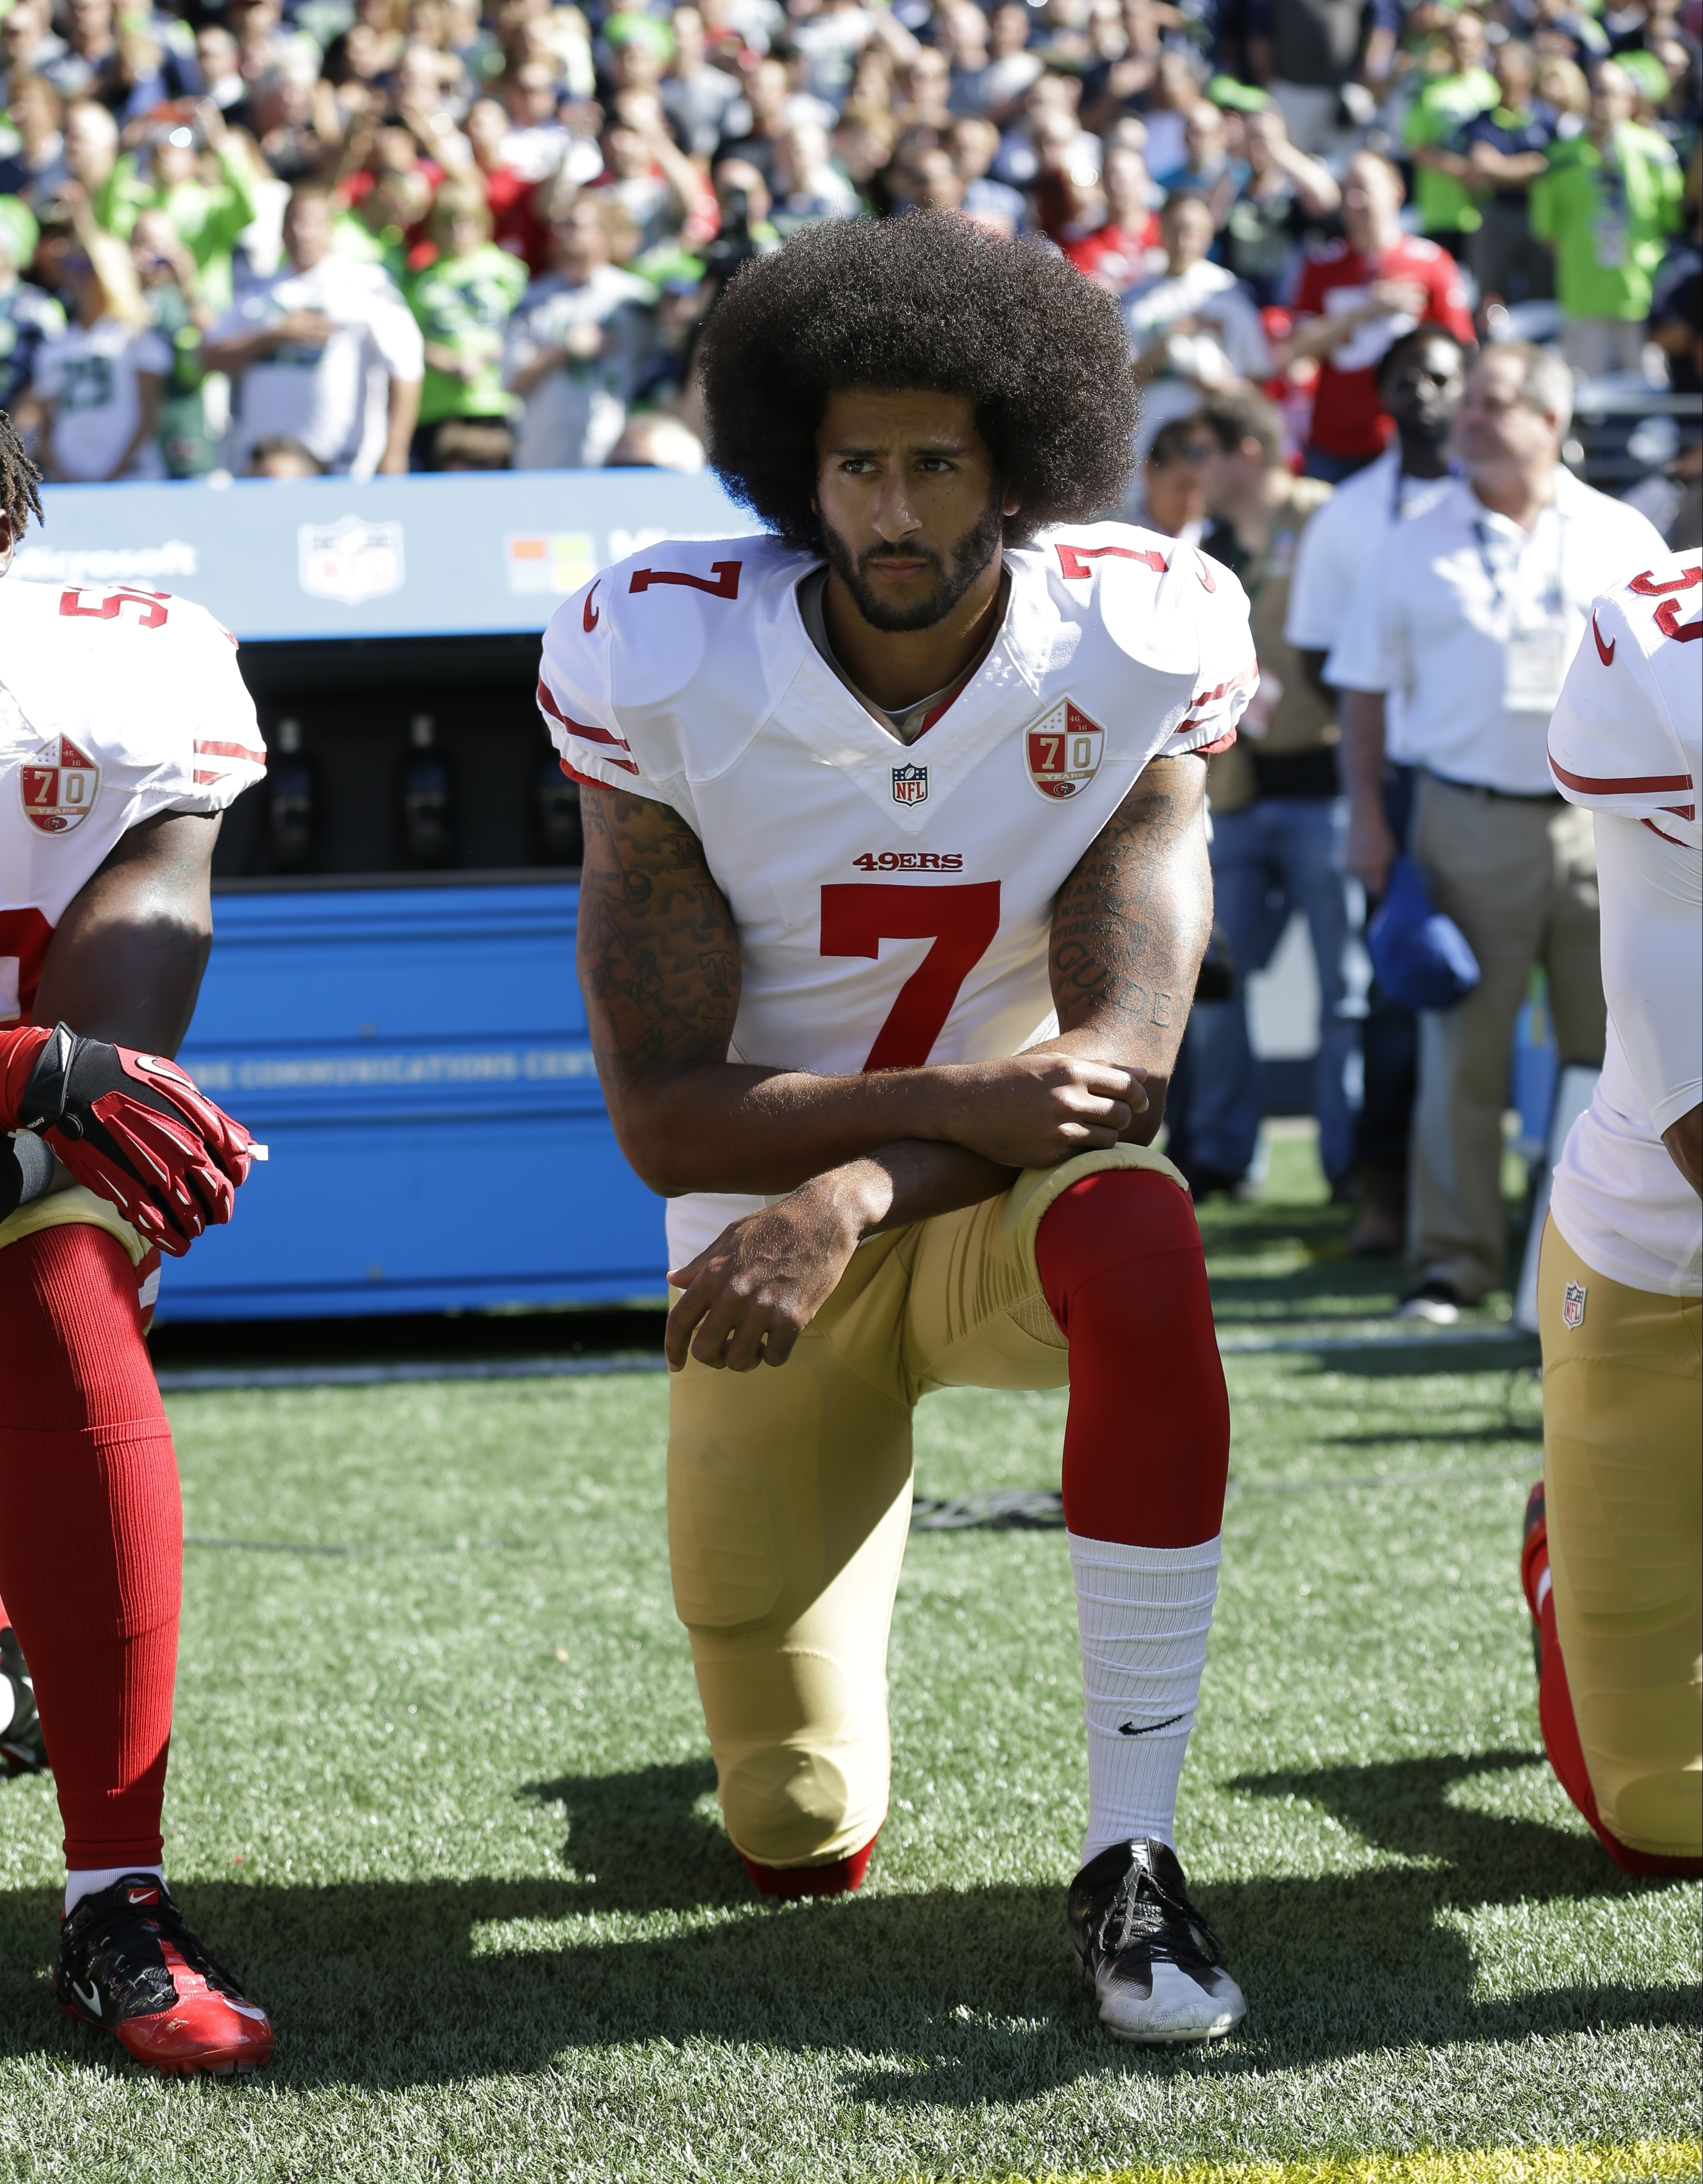 FILE - San Francisco 49ers' Colin Kaepernick kneels during the national anthem before an NFL football game against the Seattle Seahawks, in Seattle, Washington, Sept. 25, 2016. (